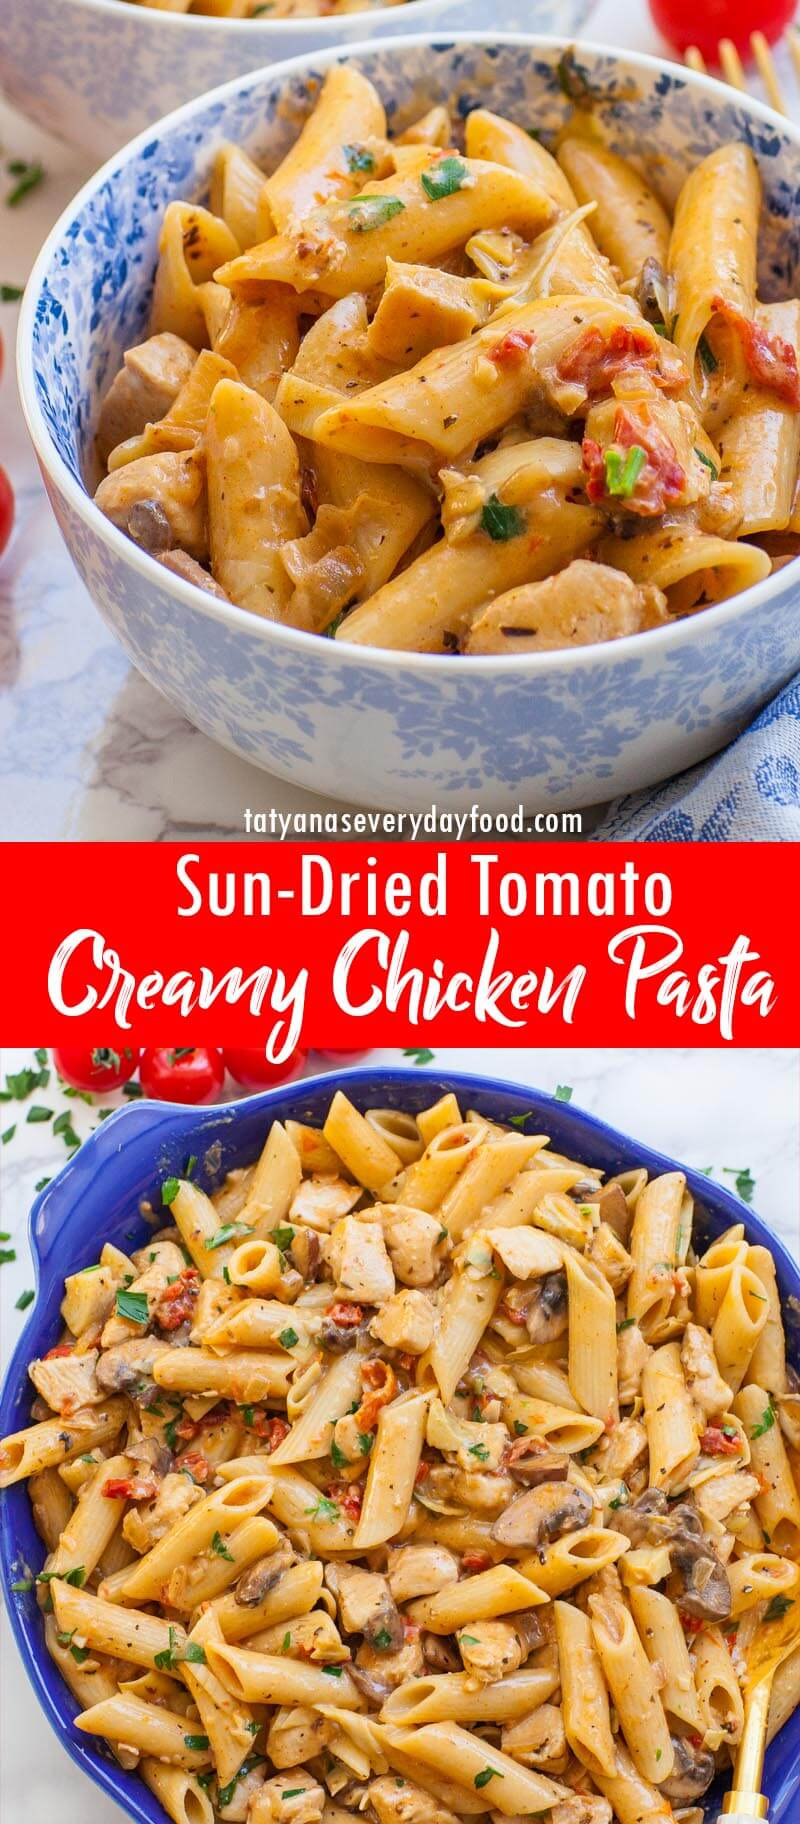 Sun-Dried Tomato Chicken Pasta video recipe